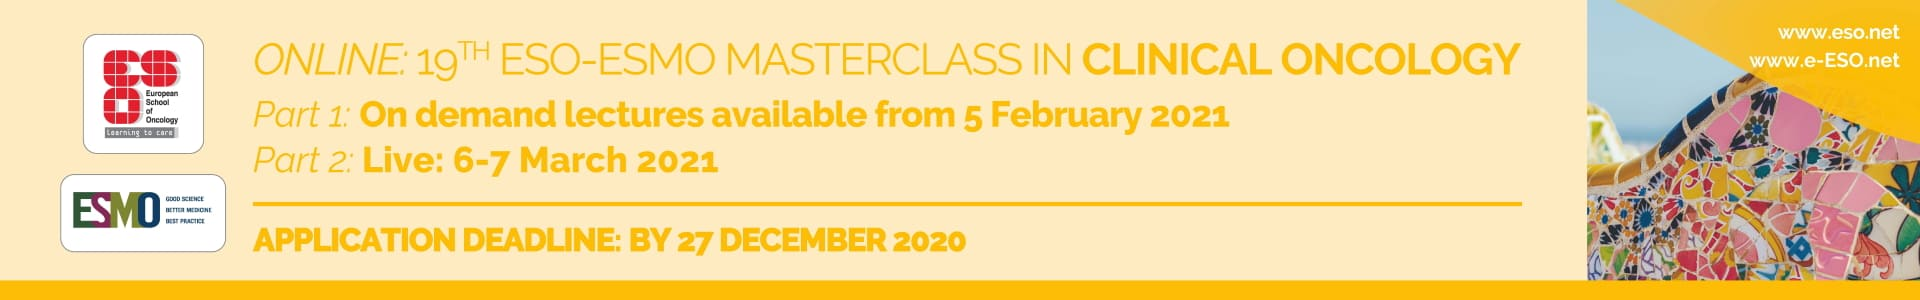 19th ESO ESMO Masterclass in Clinical Oncology